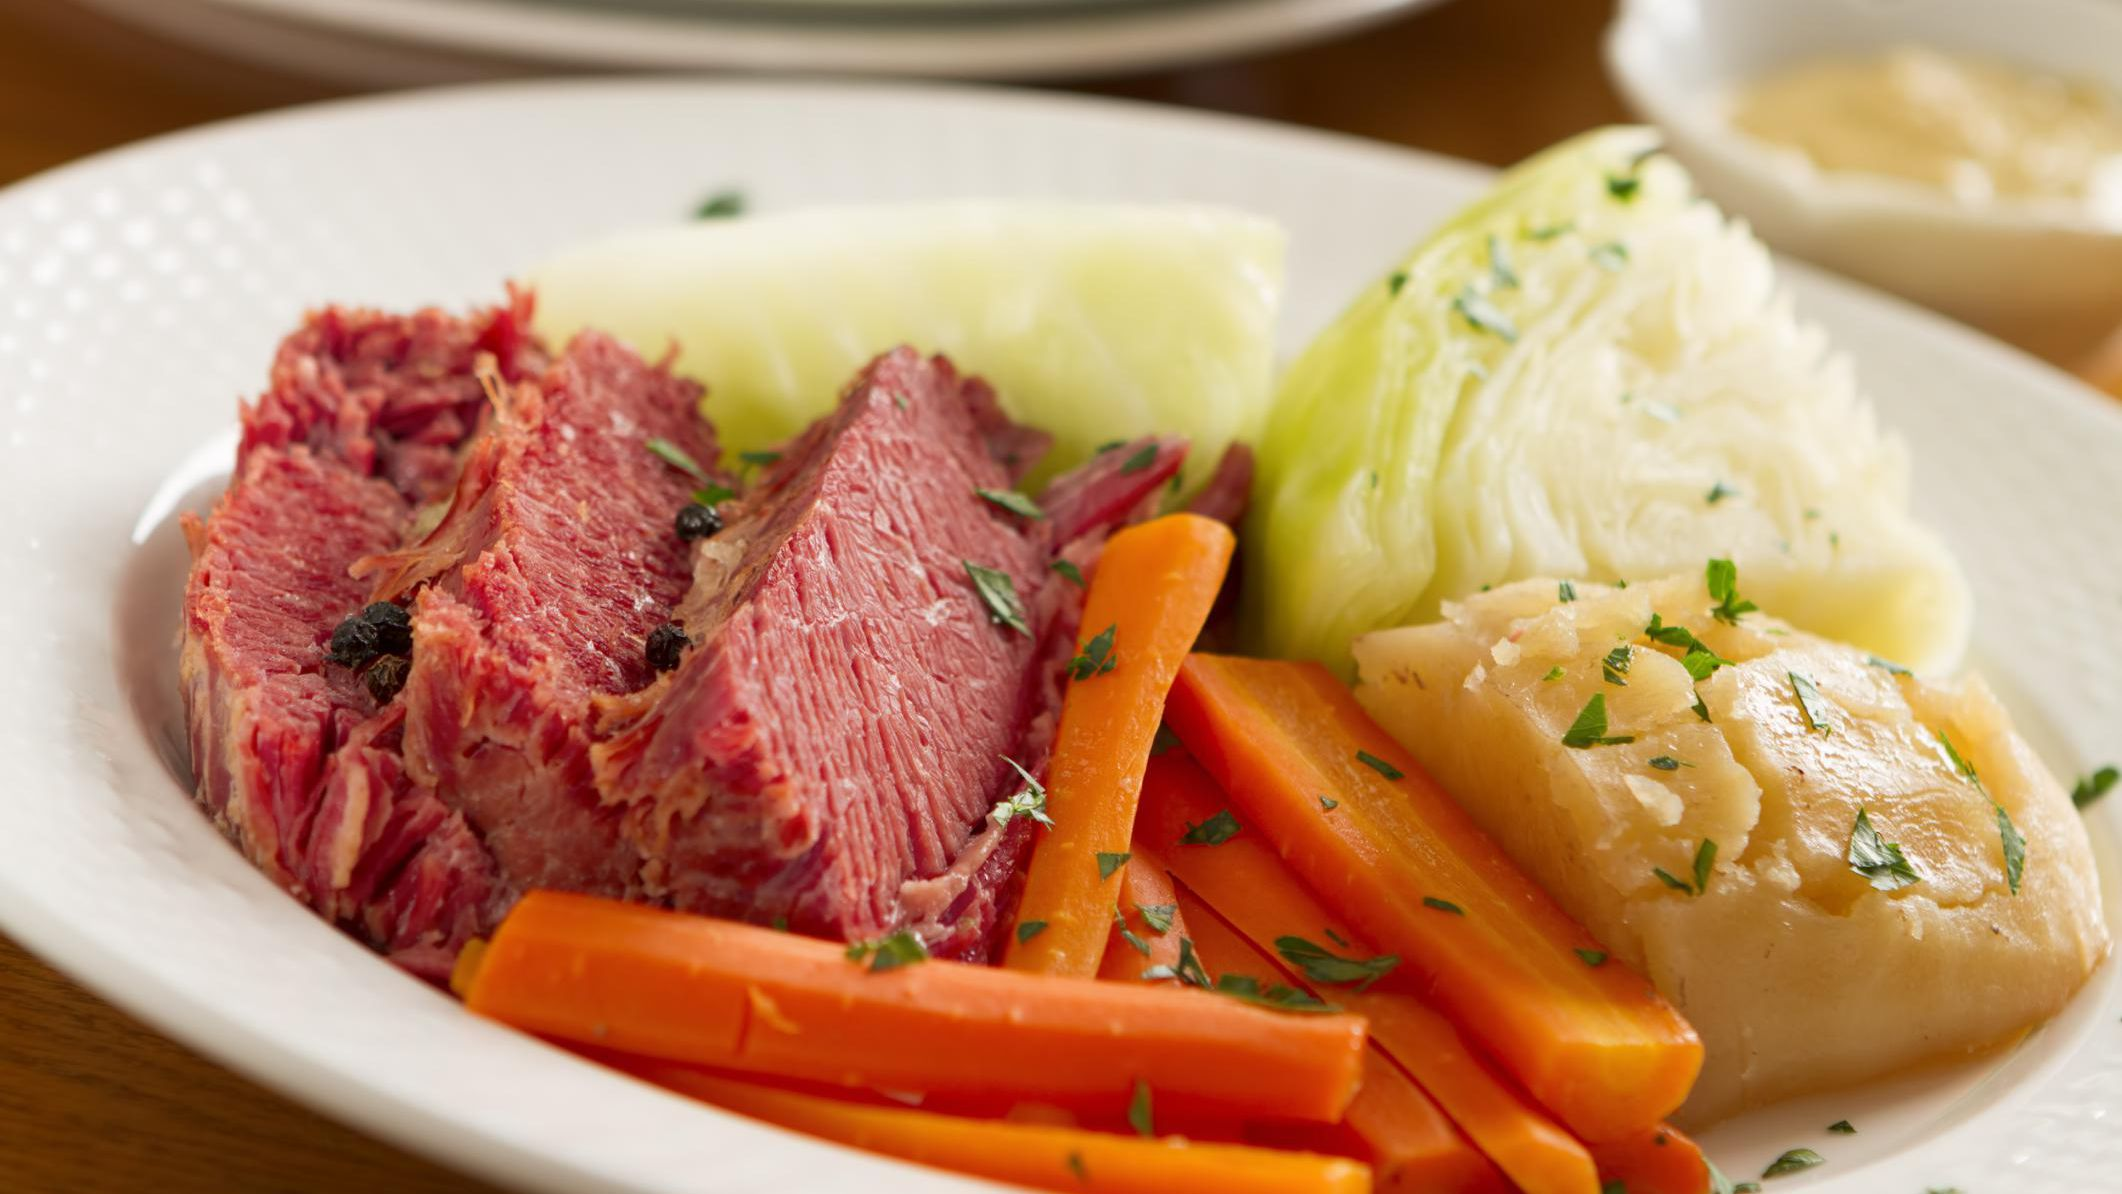 How To Make Corned Beef And Cabbage In A Dutch Oven